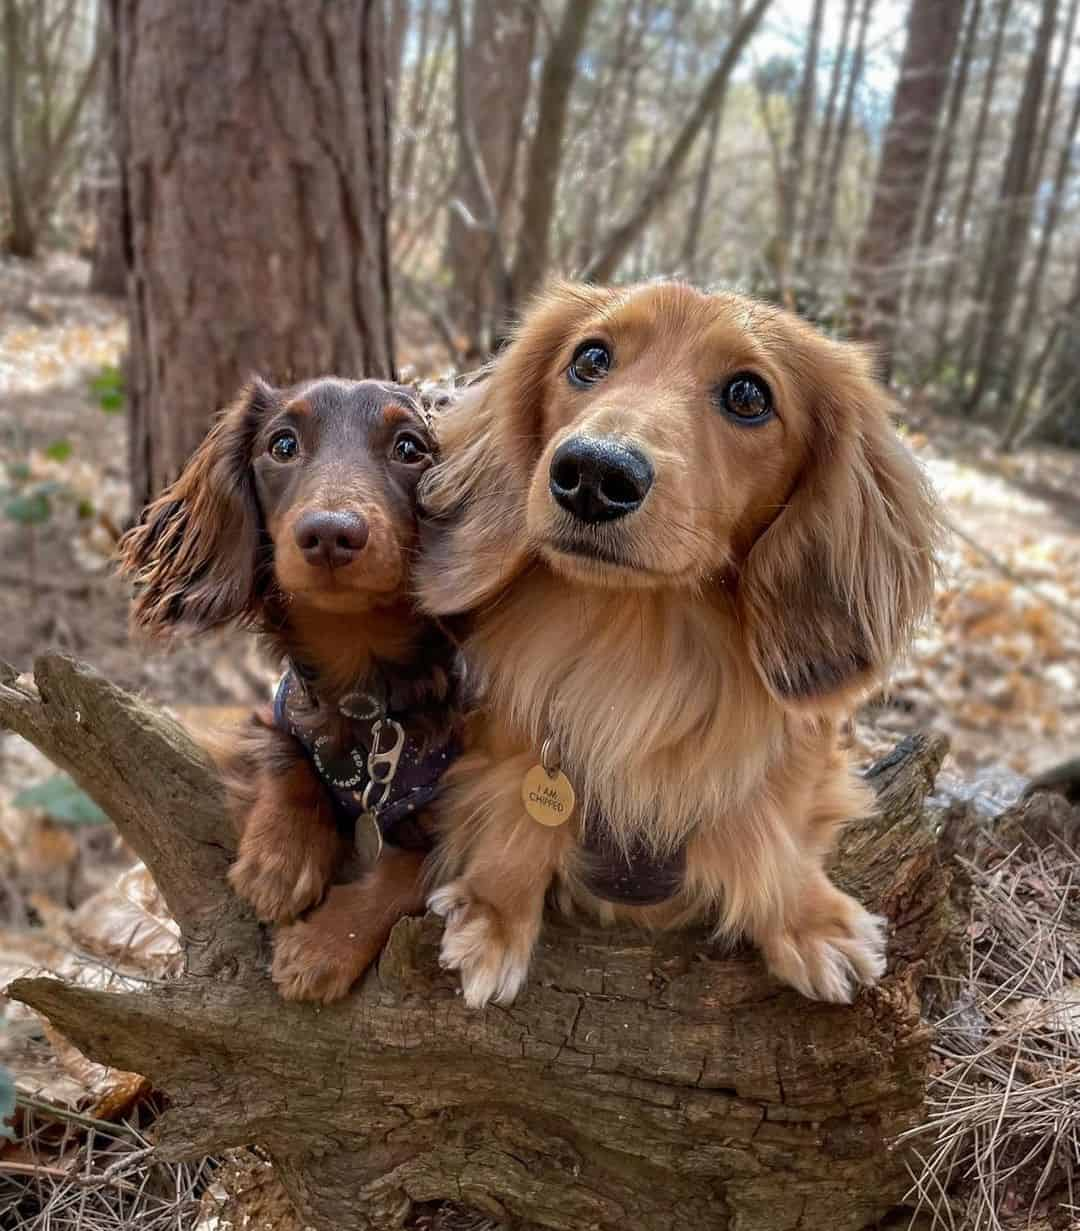 two Dachshund dogs in forest